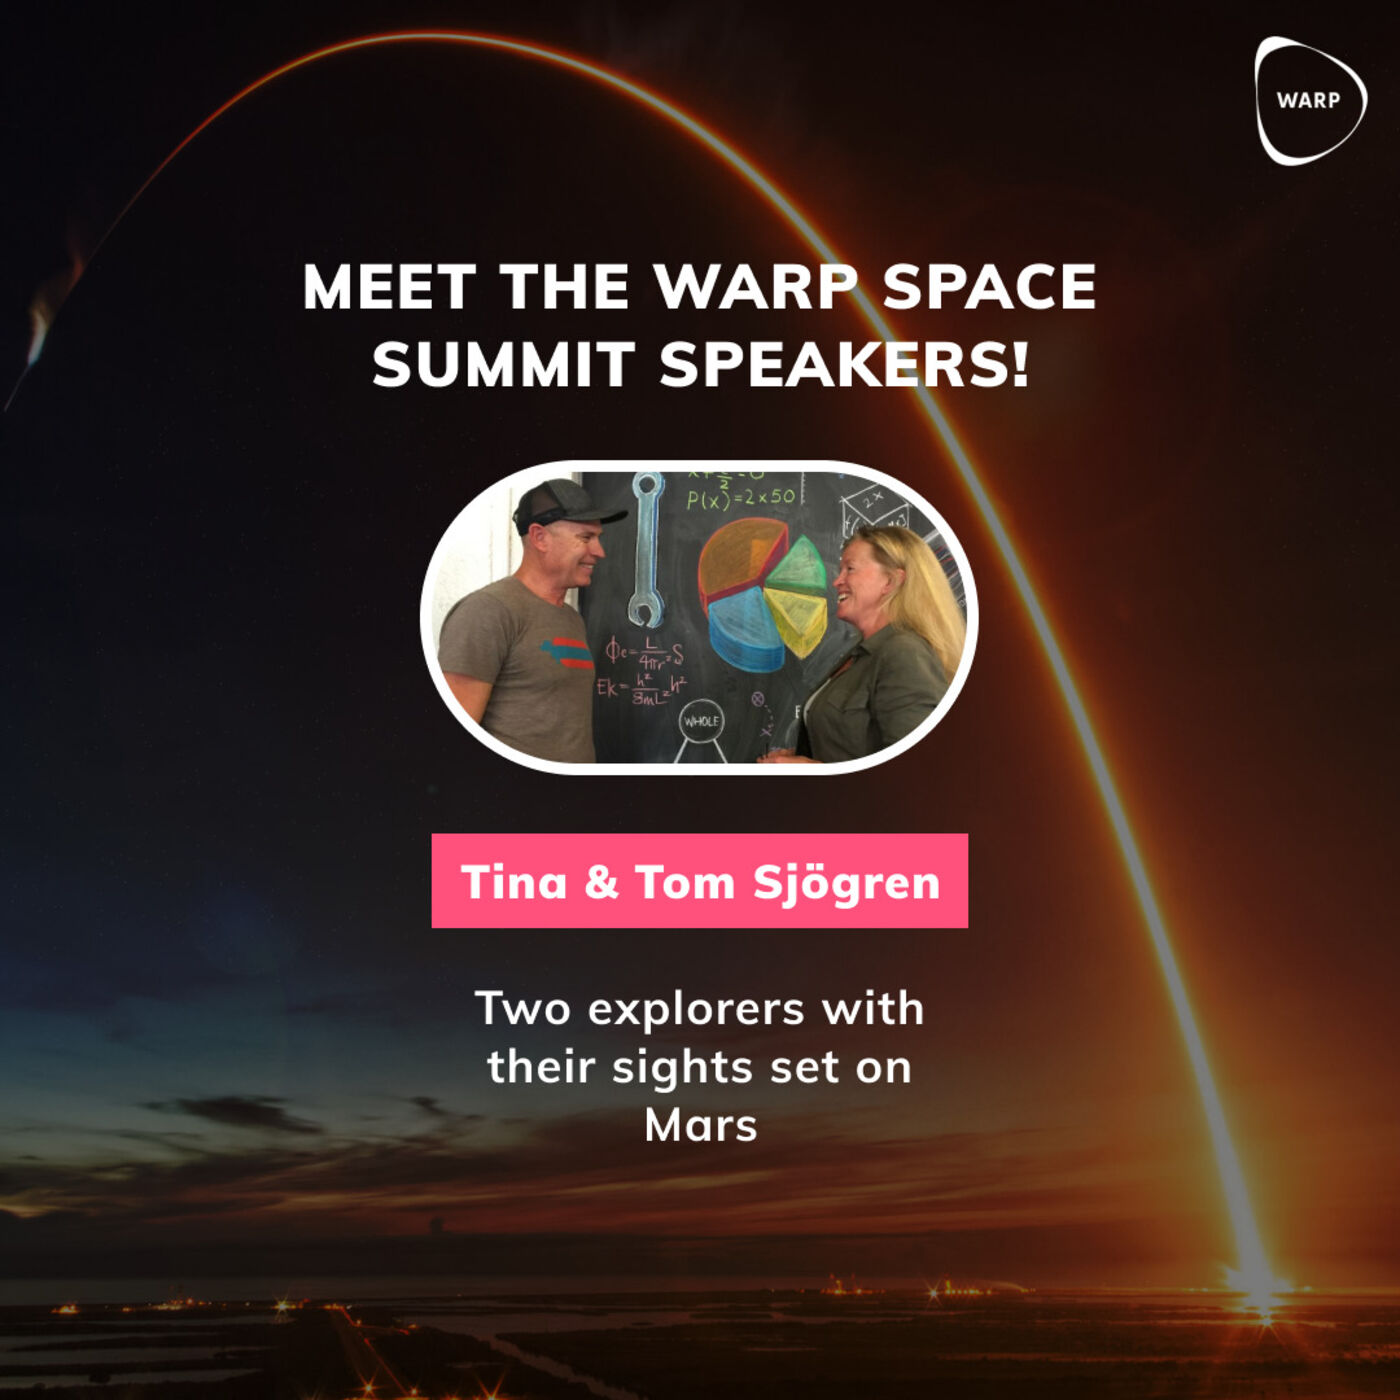 🚀 Two explorers that founded a rocket company - aiming for Mars